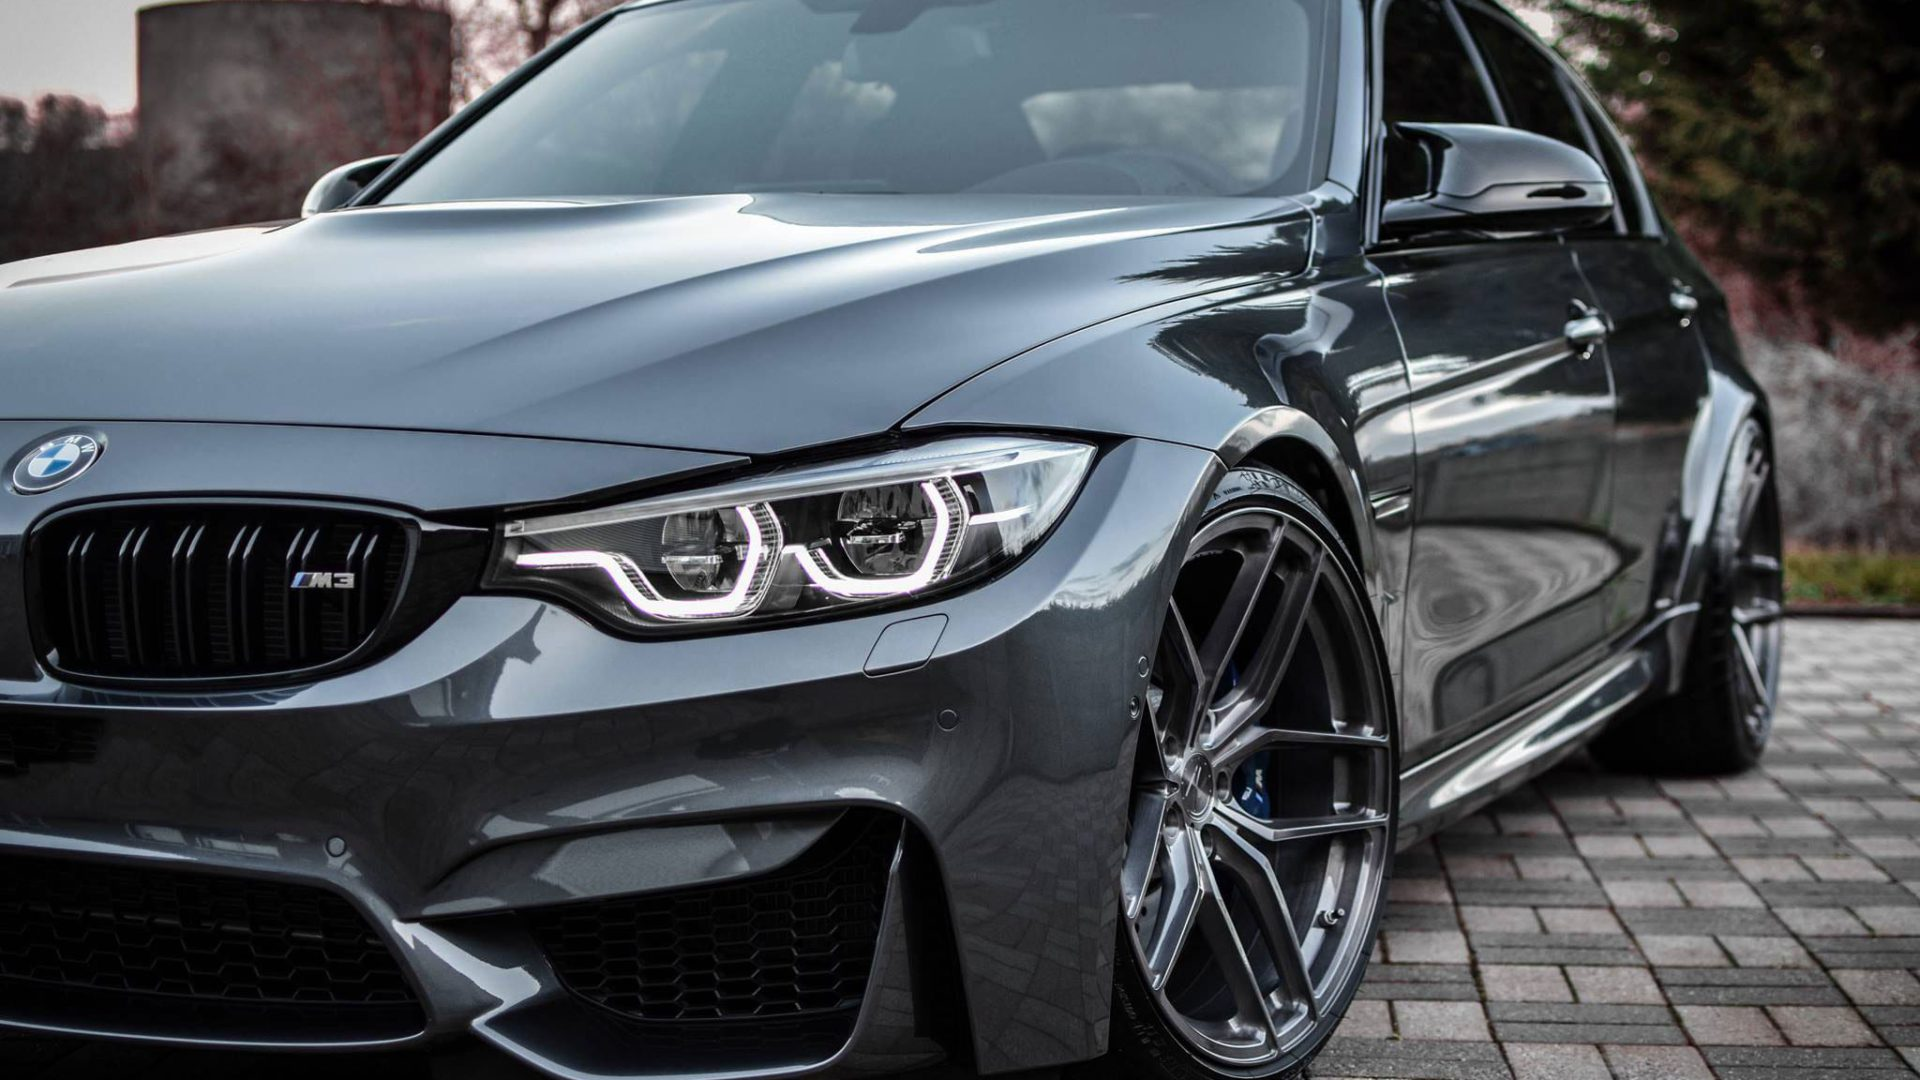 Bmw M3 F80 Felgen Z Performance Wheels Zp2 1 Deep Concave Flowforged Gloss Metal M D Exclusive Cardesign